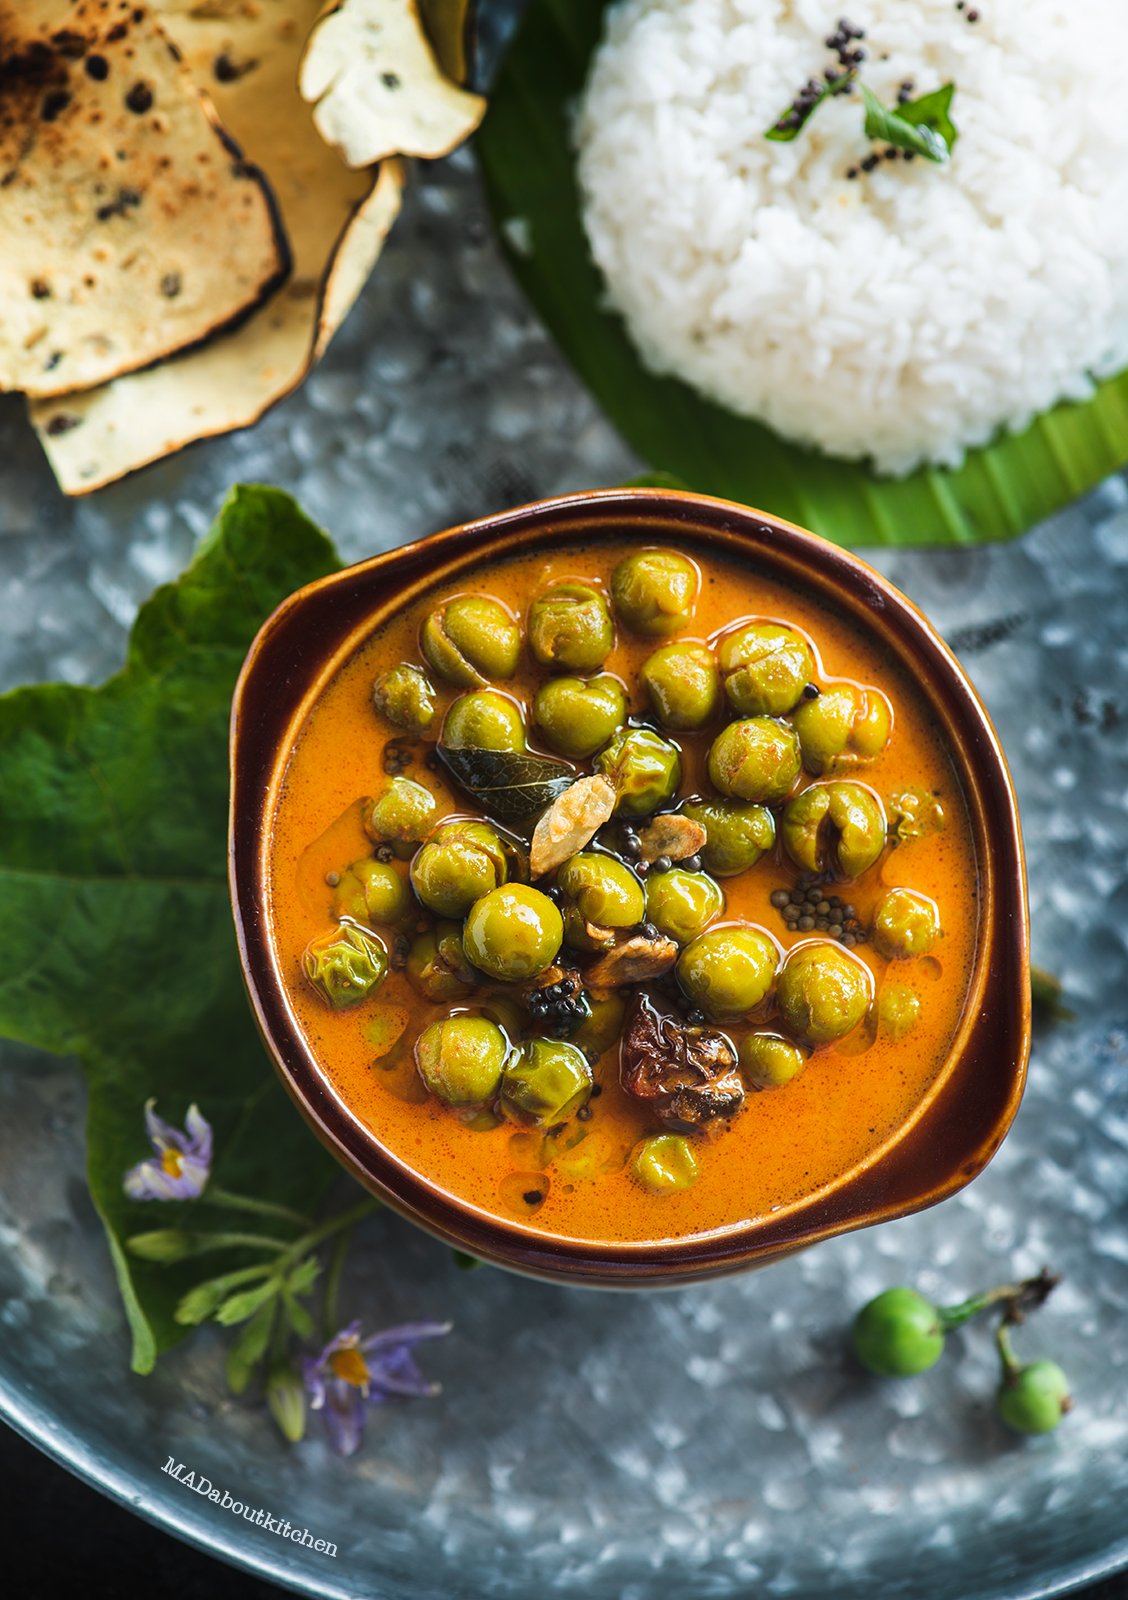 Sundekkayi Gojju is a creamy, spicy curry which is served usually with rice and tastes absolutely yummy which is made using foraged turkey berry.